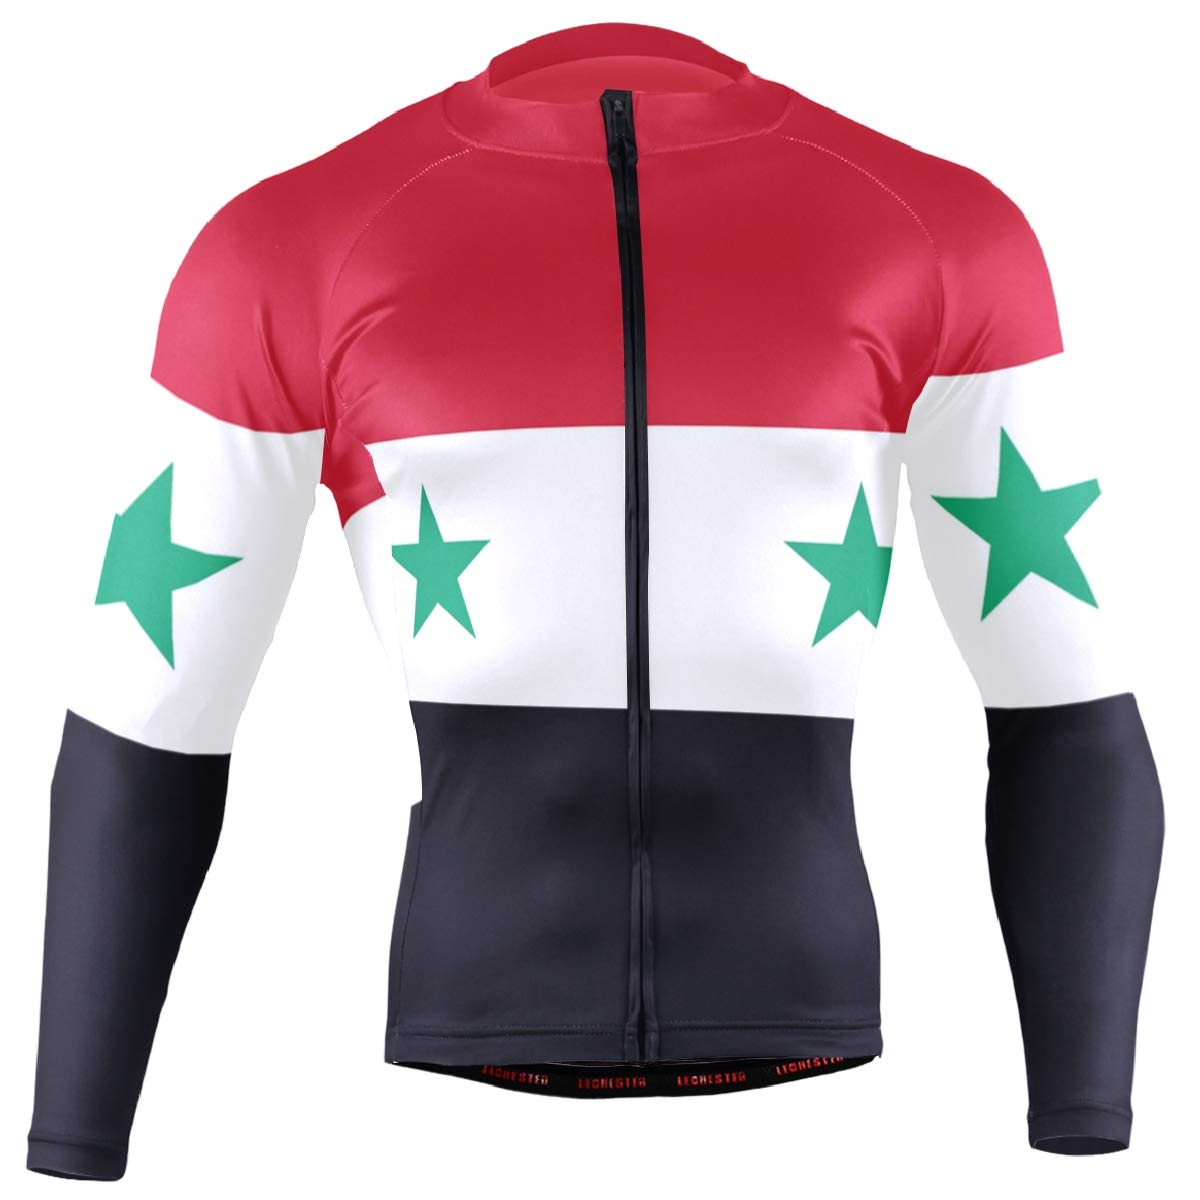 CHINEIN Men's Cycling Jersey Long Sleeve with 3 Rear Pockets Shirt Syria Flag